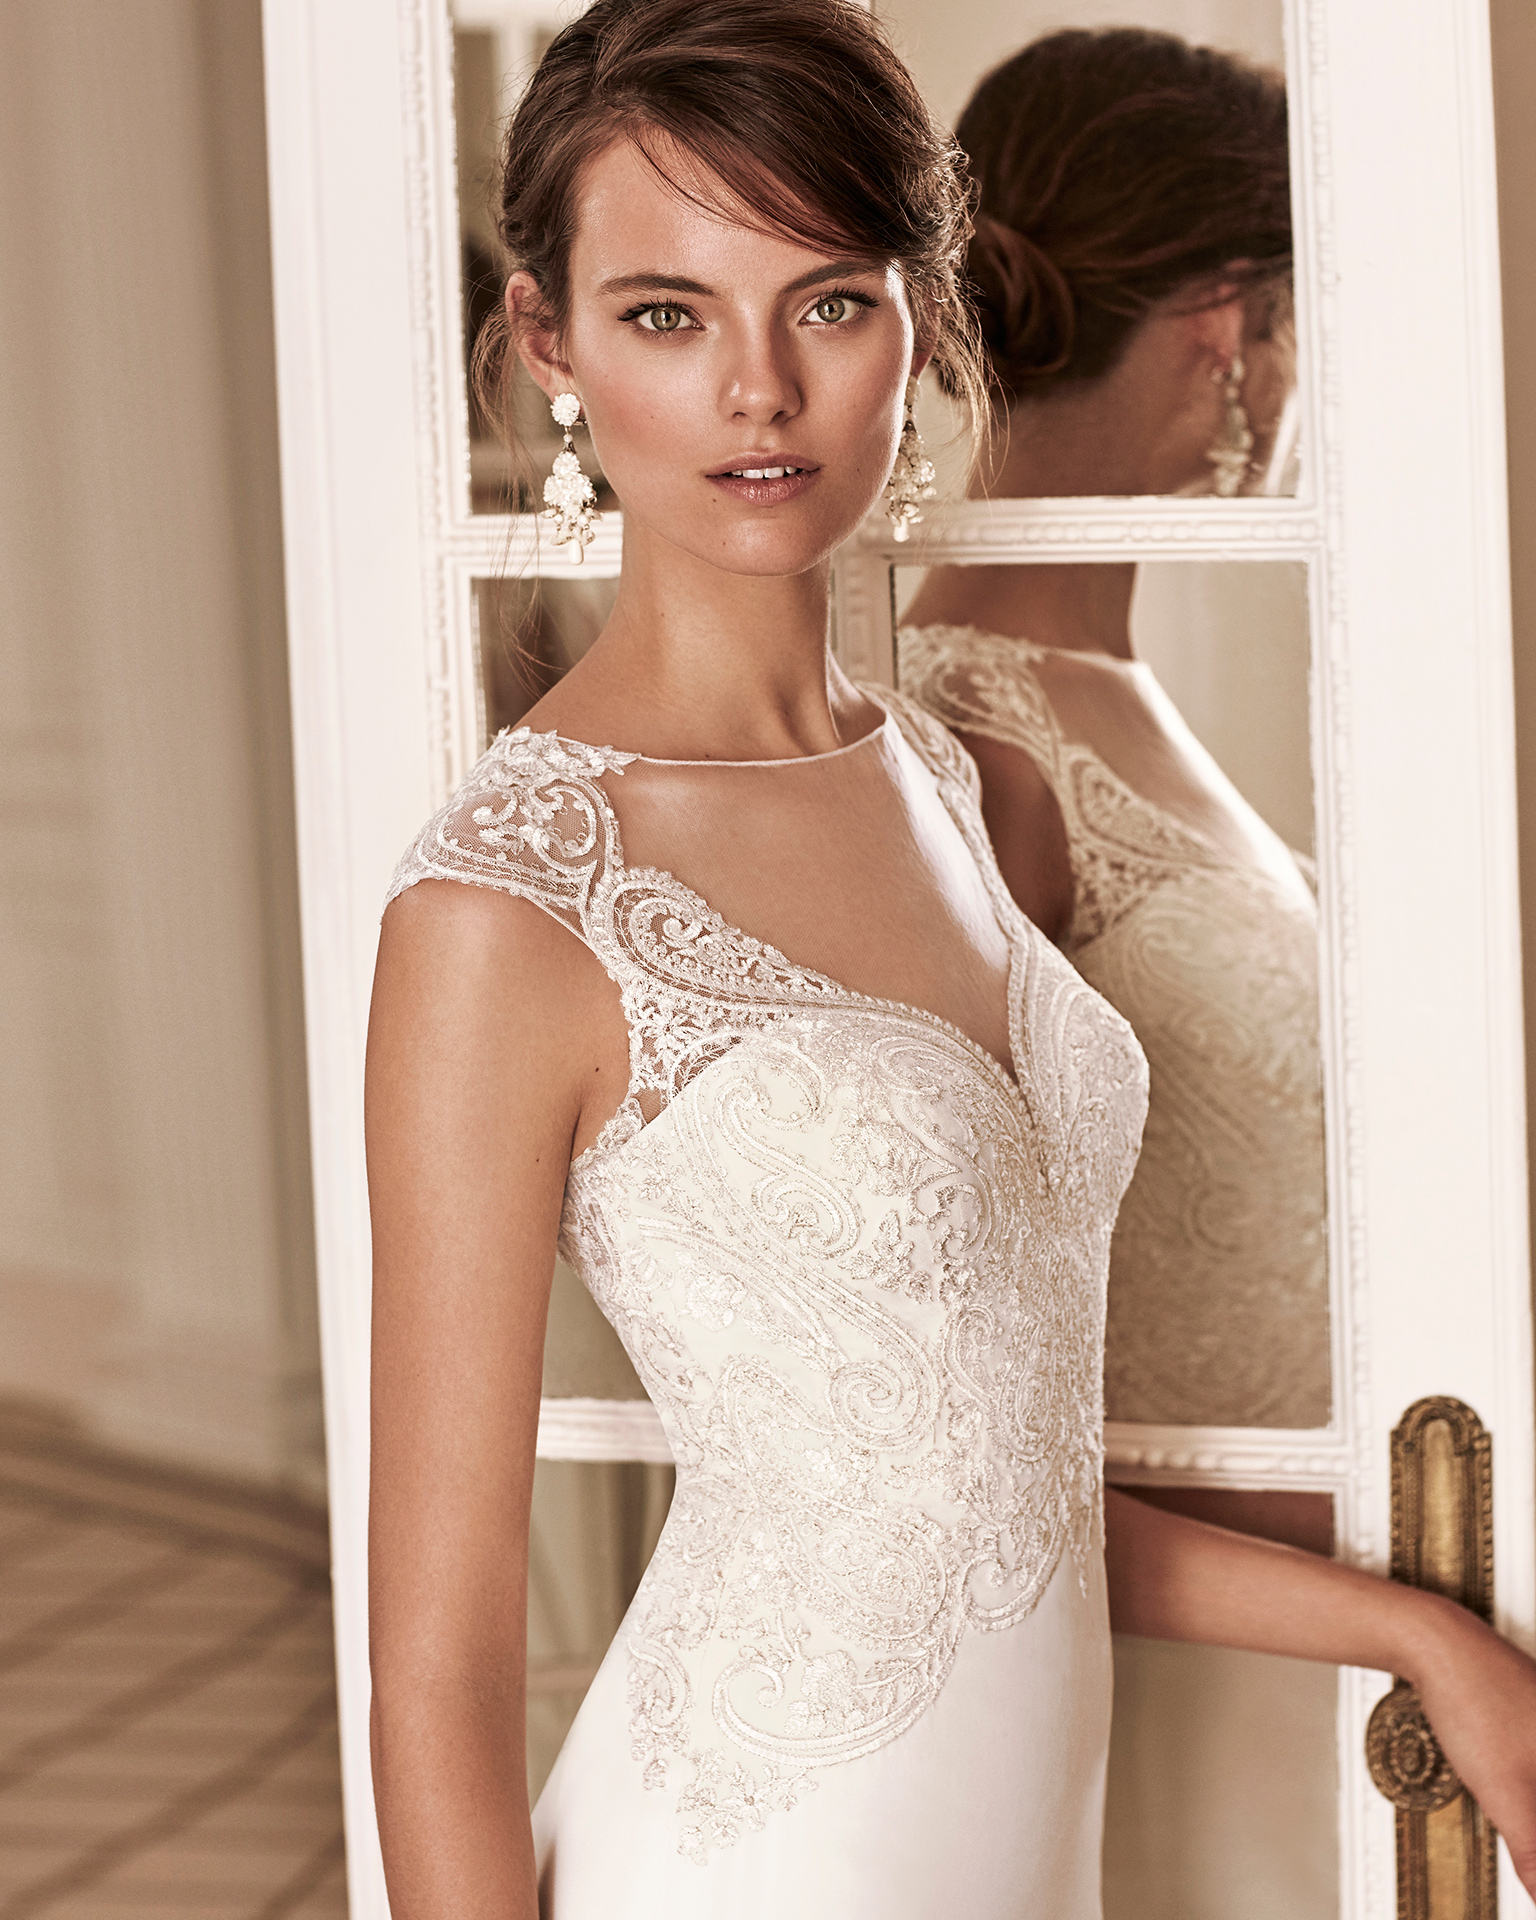 Mermaid-style crepe Georgette and lace wedding dress with deep-plunge neckline and low back.